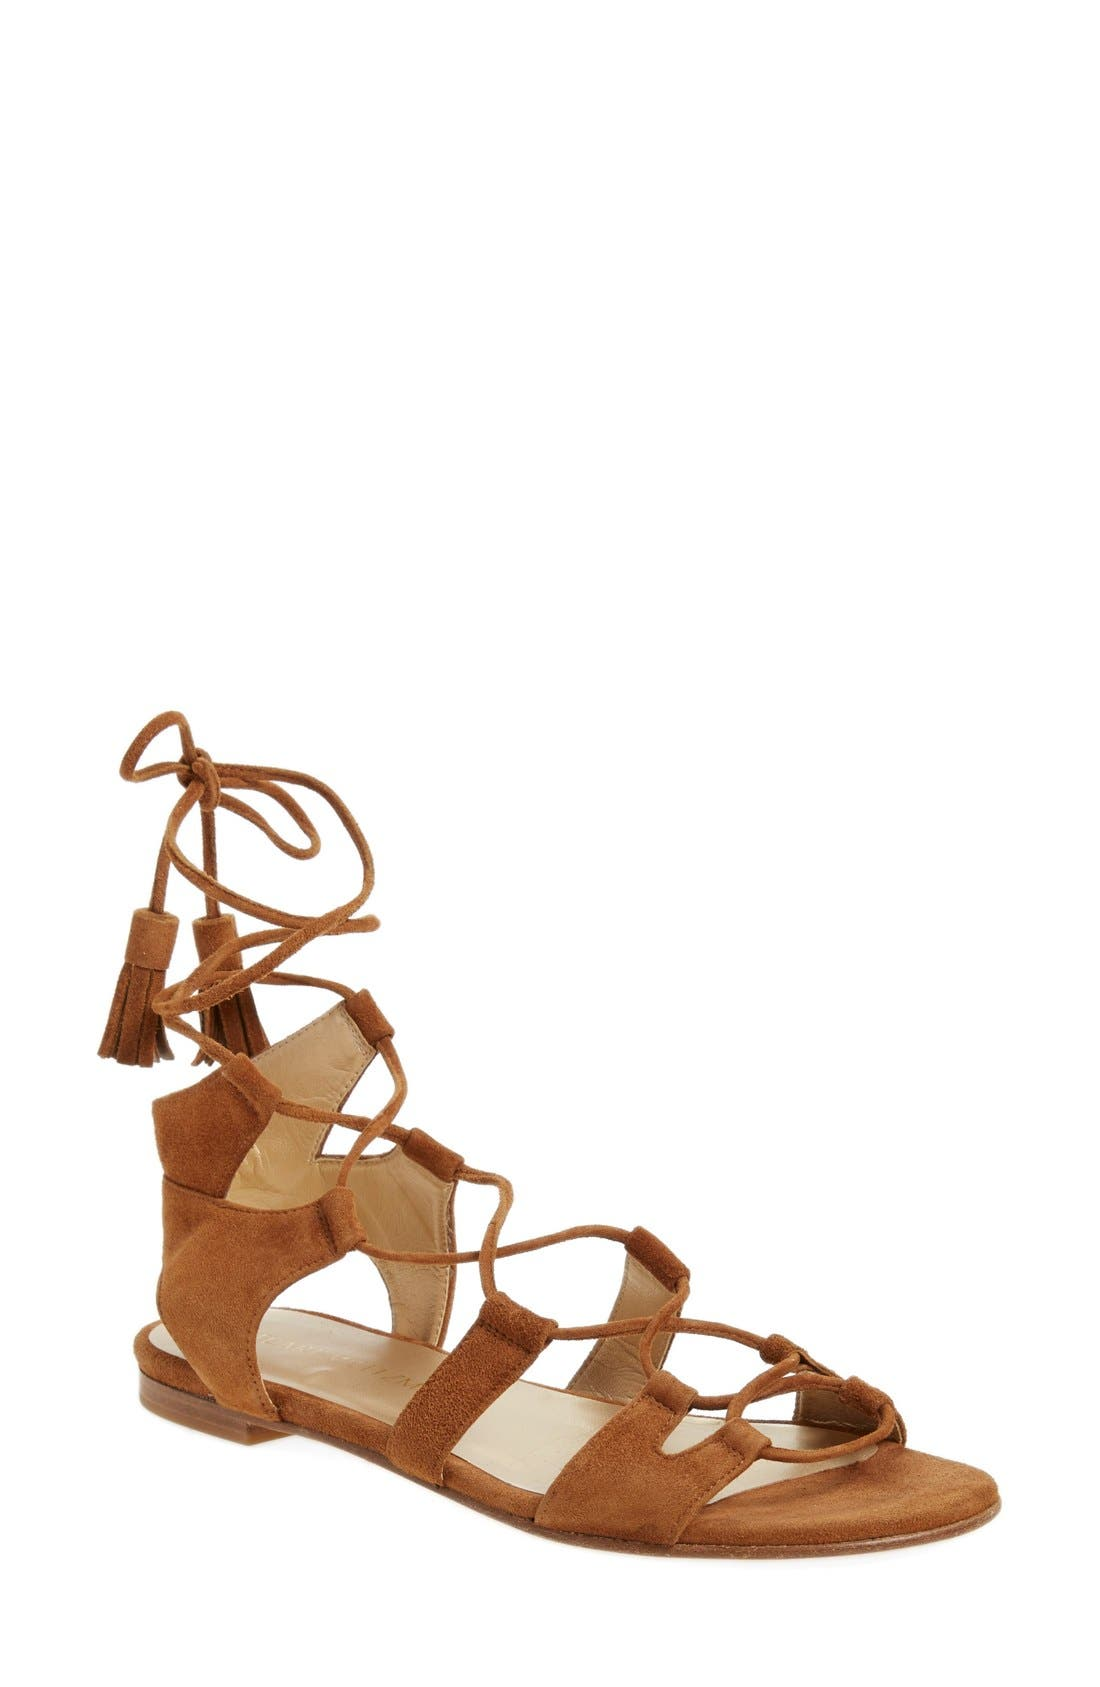 'Romanflat' Ghillie Sandal,                         Main,                         color, 250